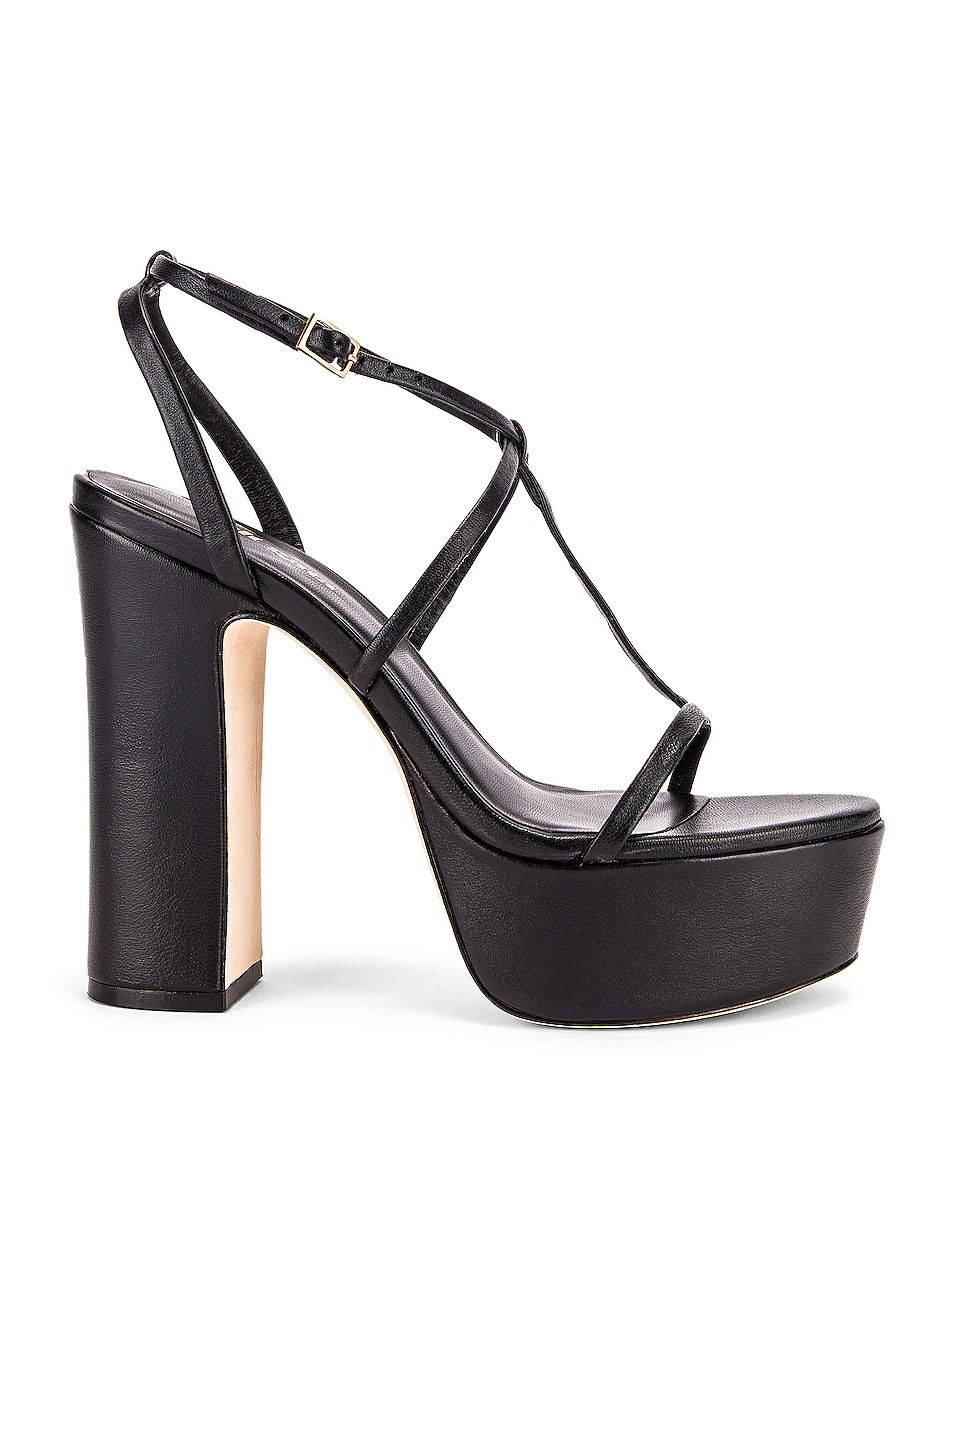 Image 1 of Cult Gaia Angela Heel in Black